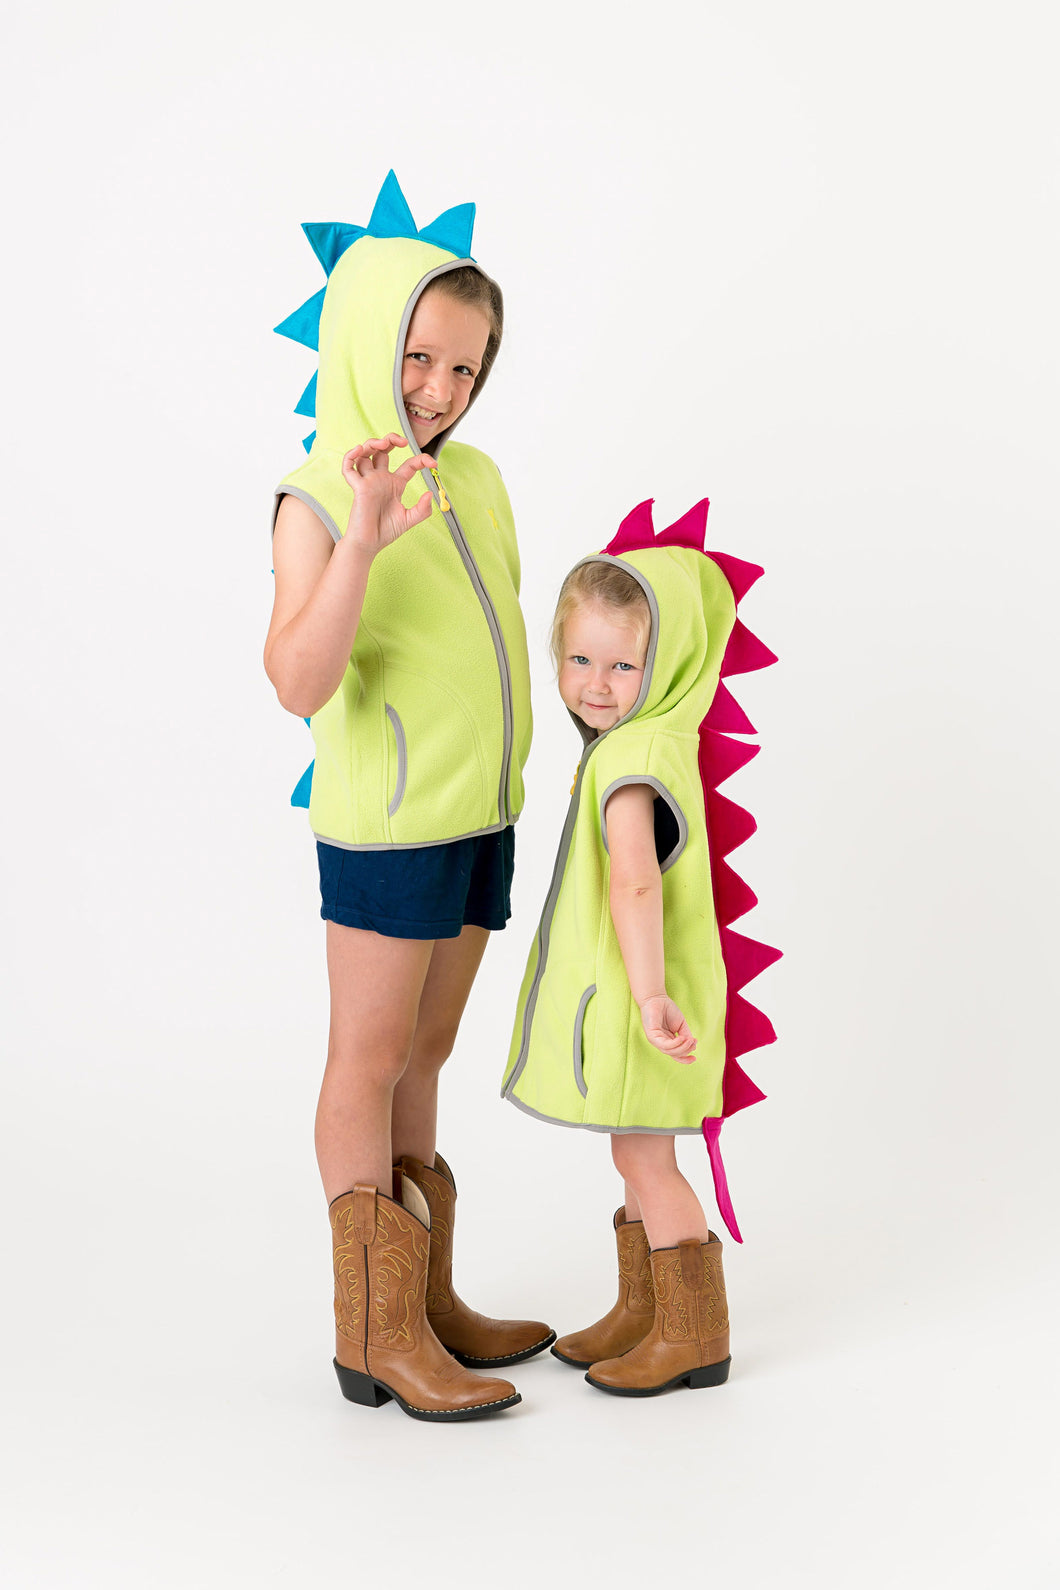 Dinosaur vest costumes on children